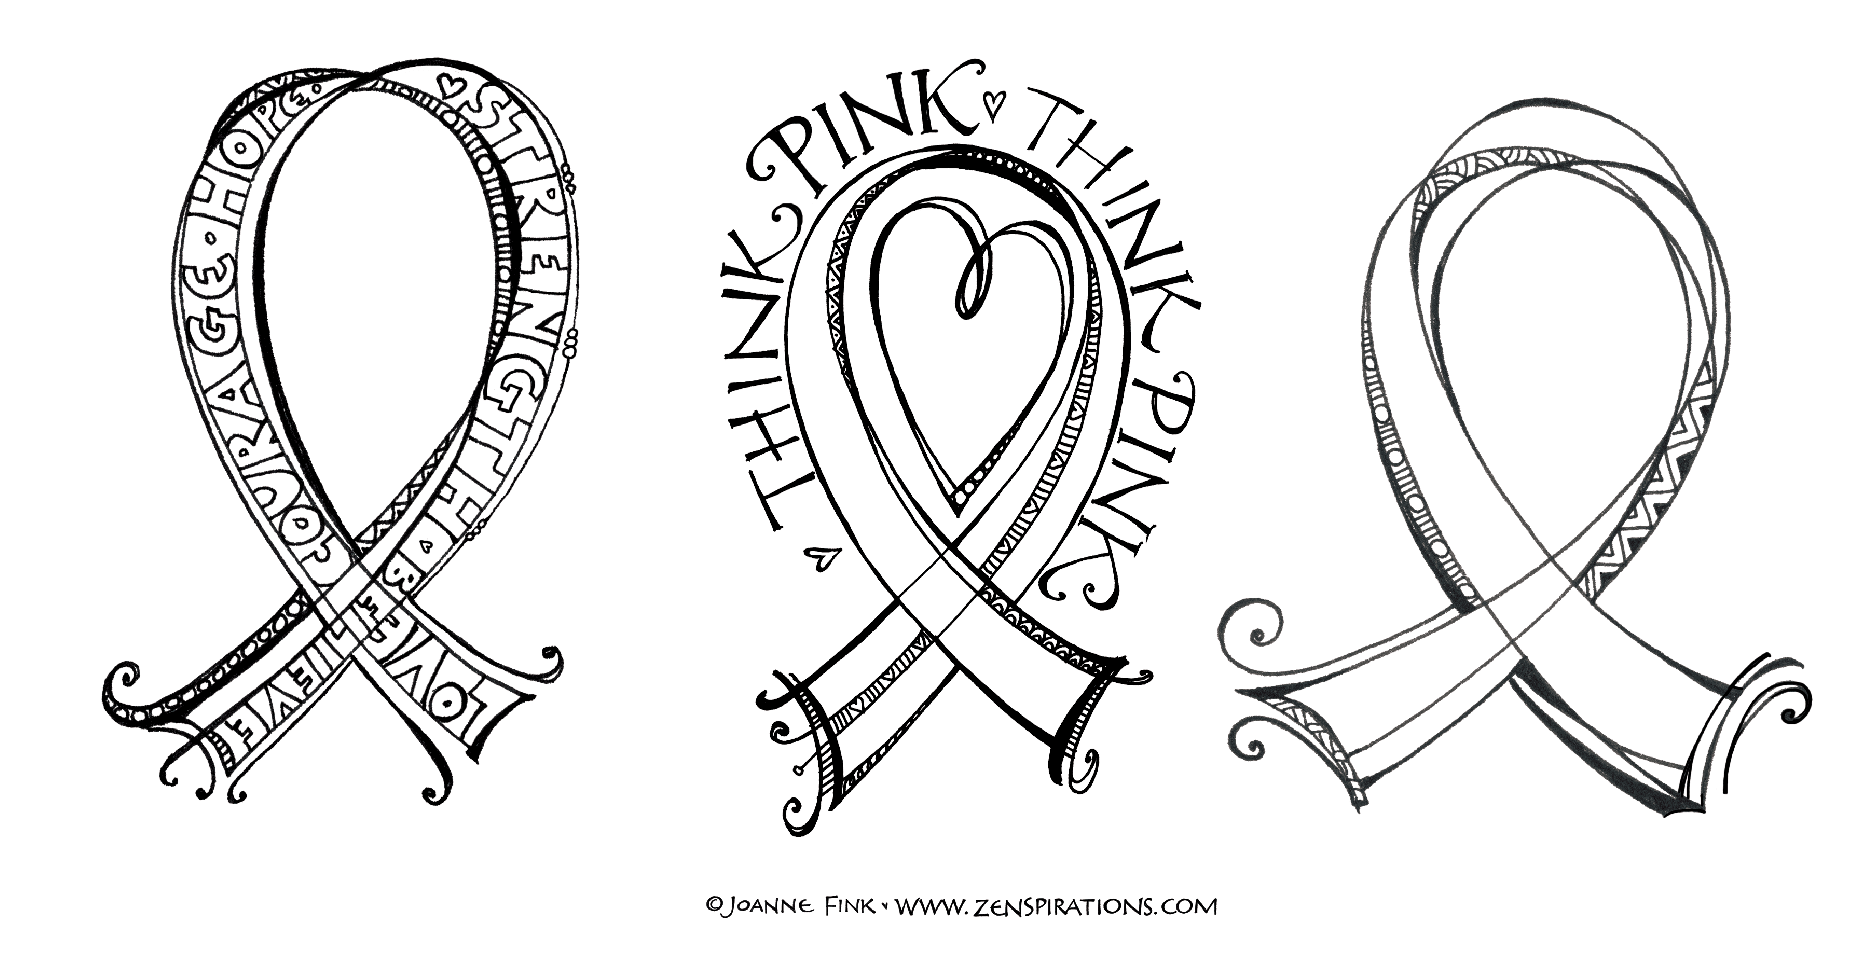 Click here to download the zenspirations r pink ribbon printable coloring page when you get to the page right click the image to save a copy